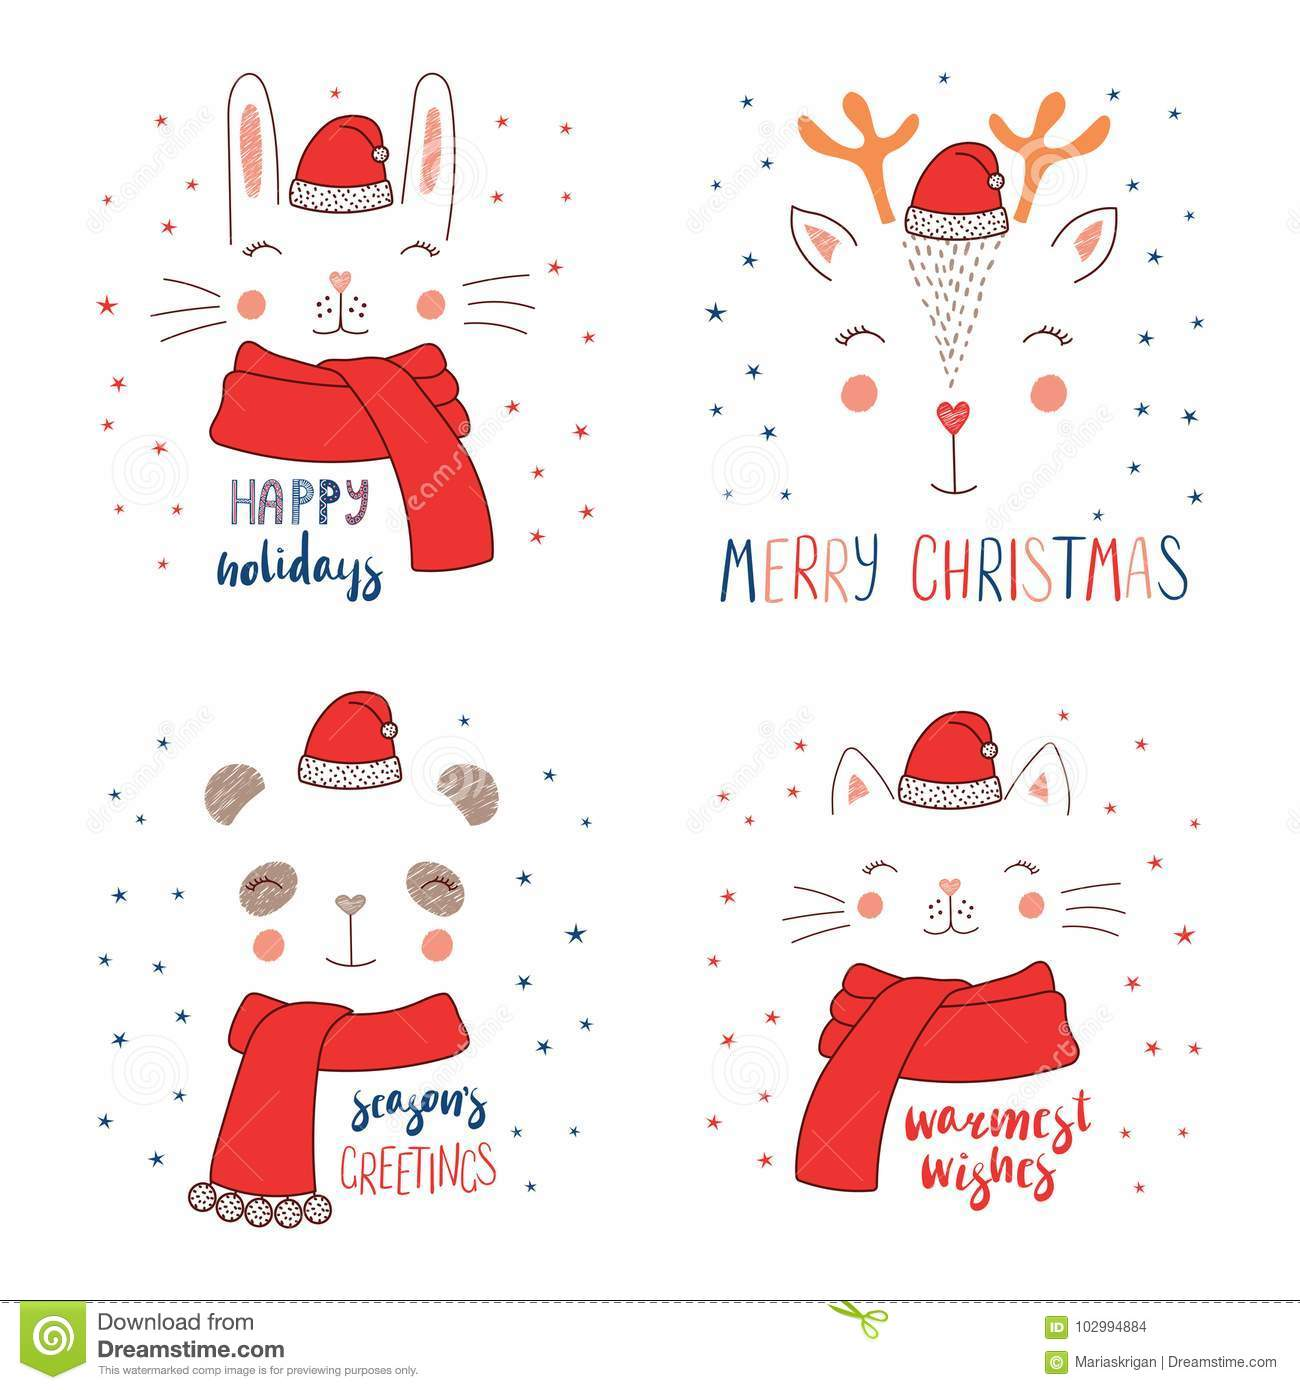 Animal Faces In Santa Claus Hat Stock Vector Illustration Of Claus